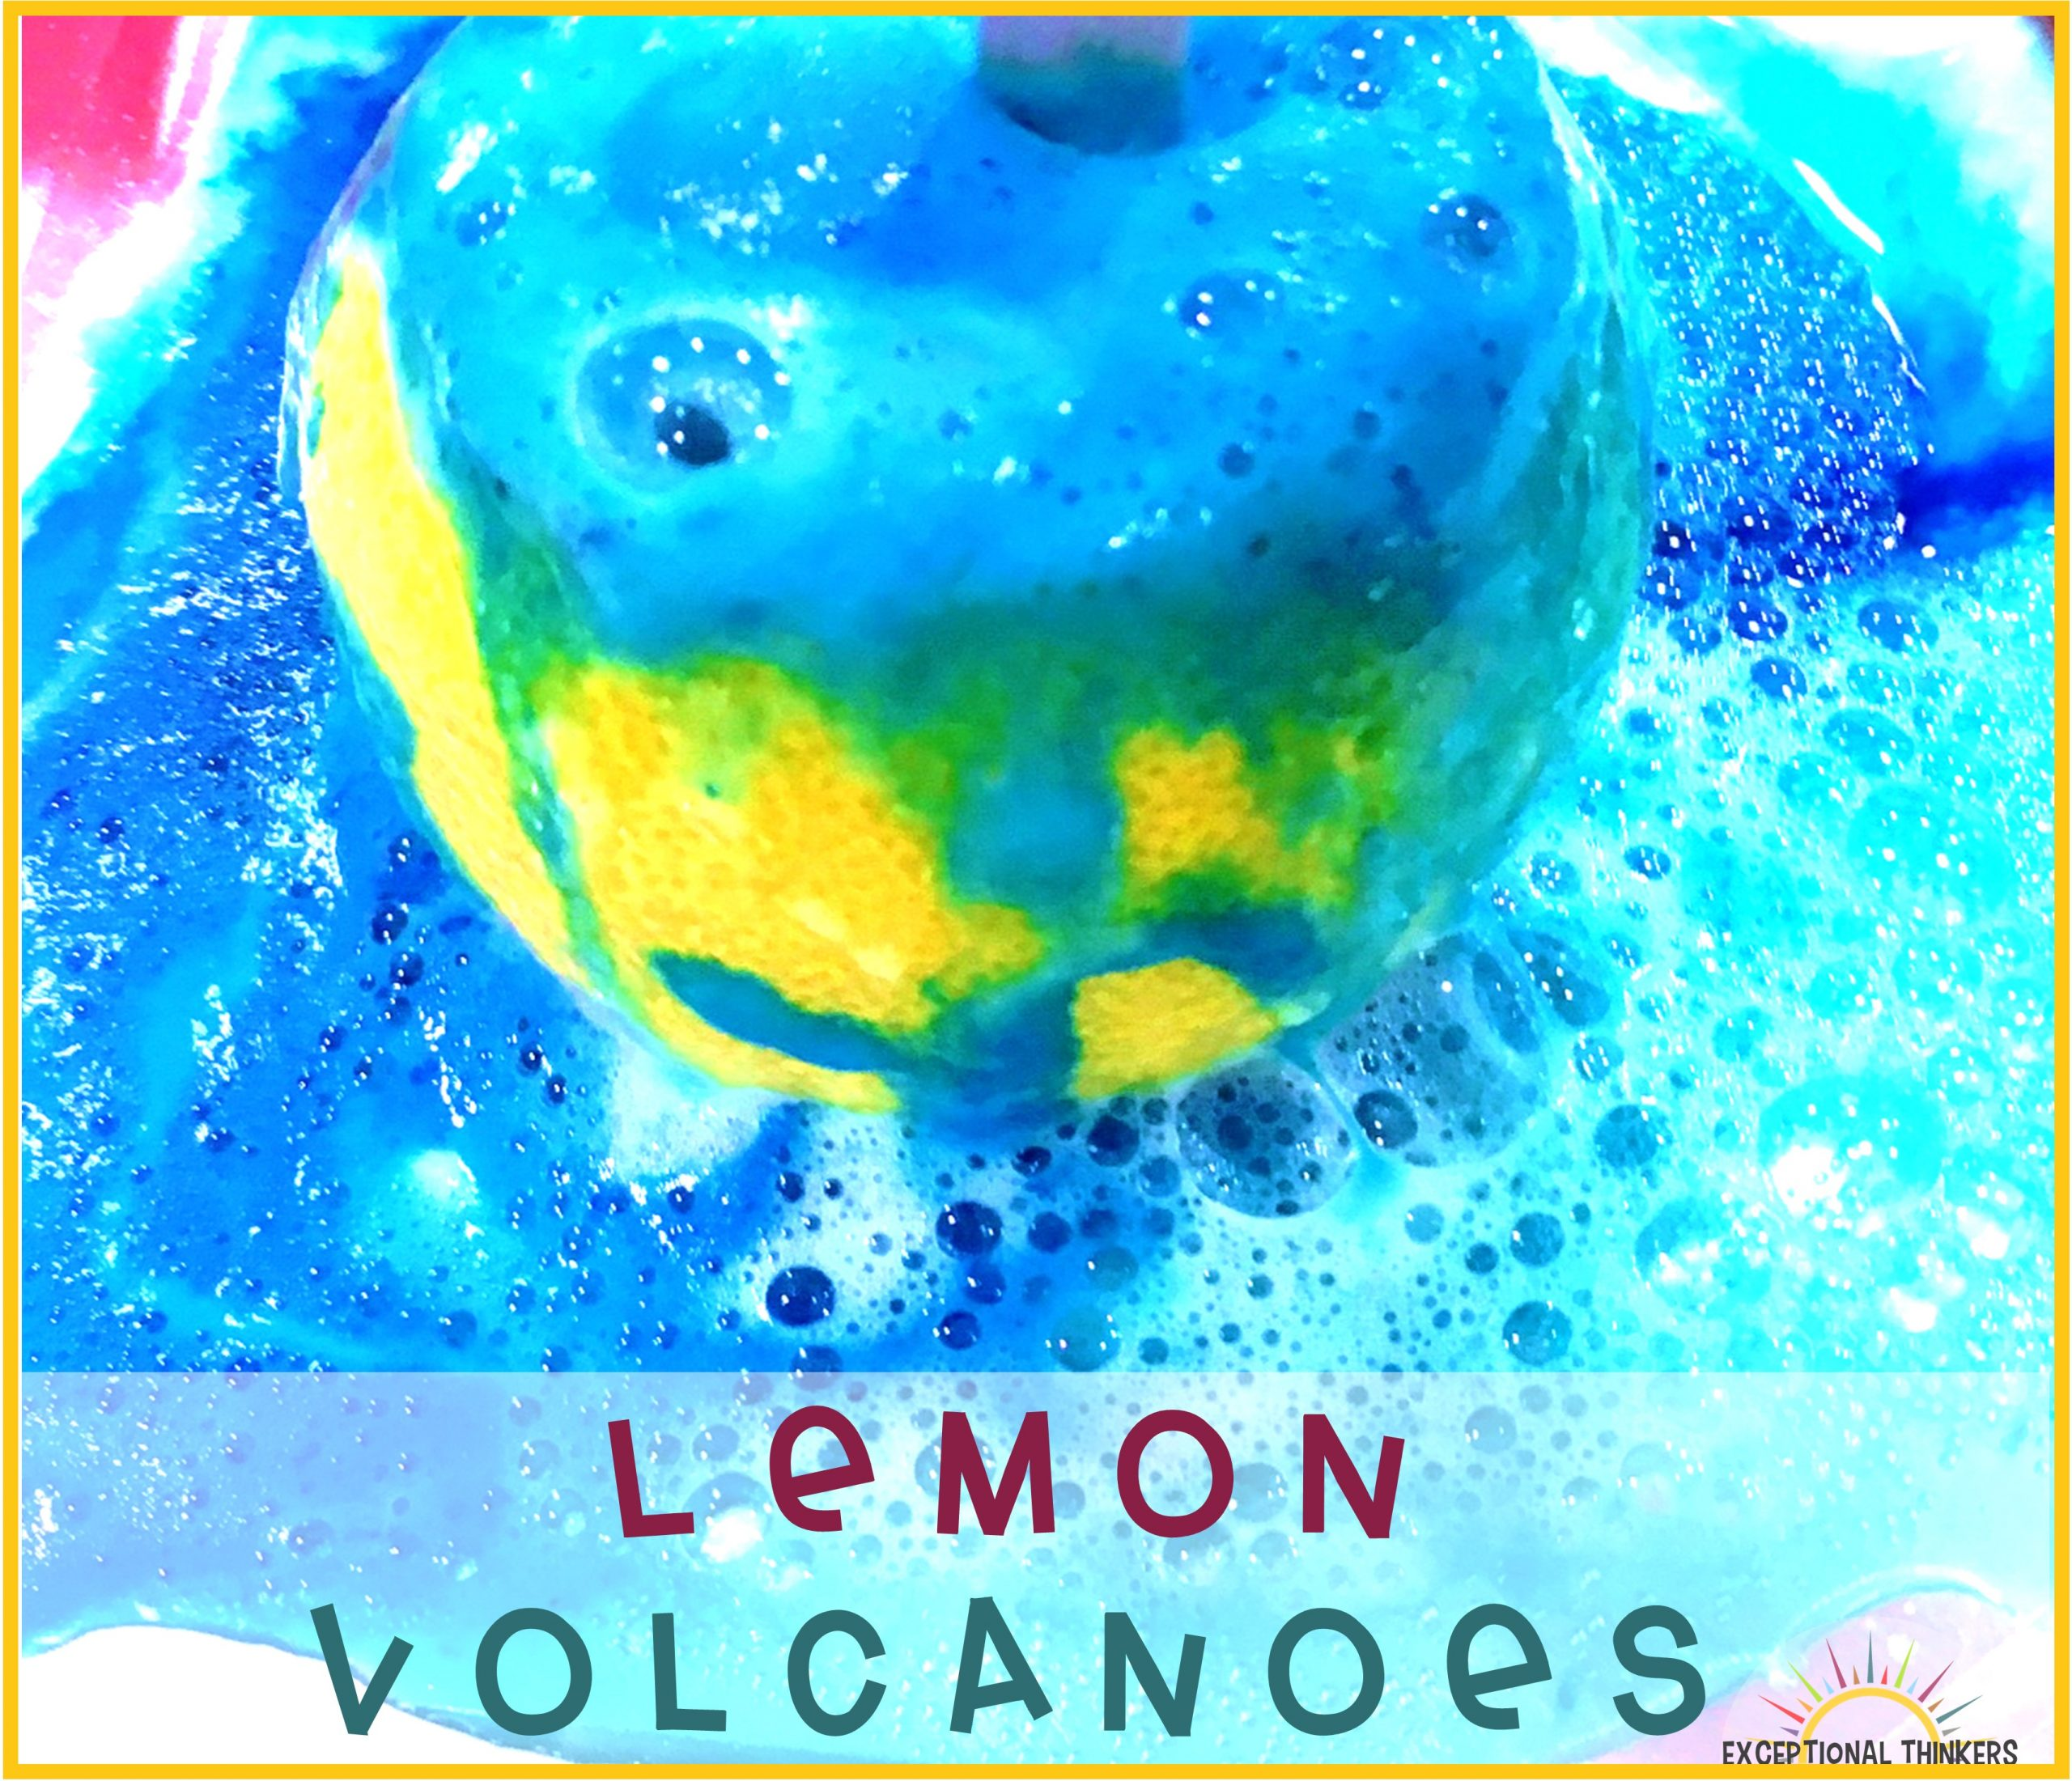 How to Make a Lemon Volcano